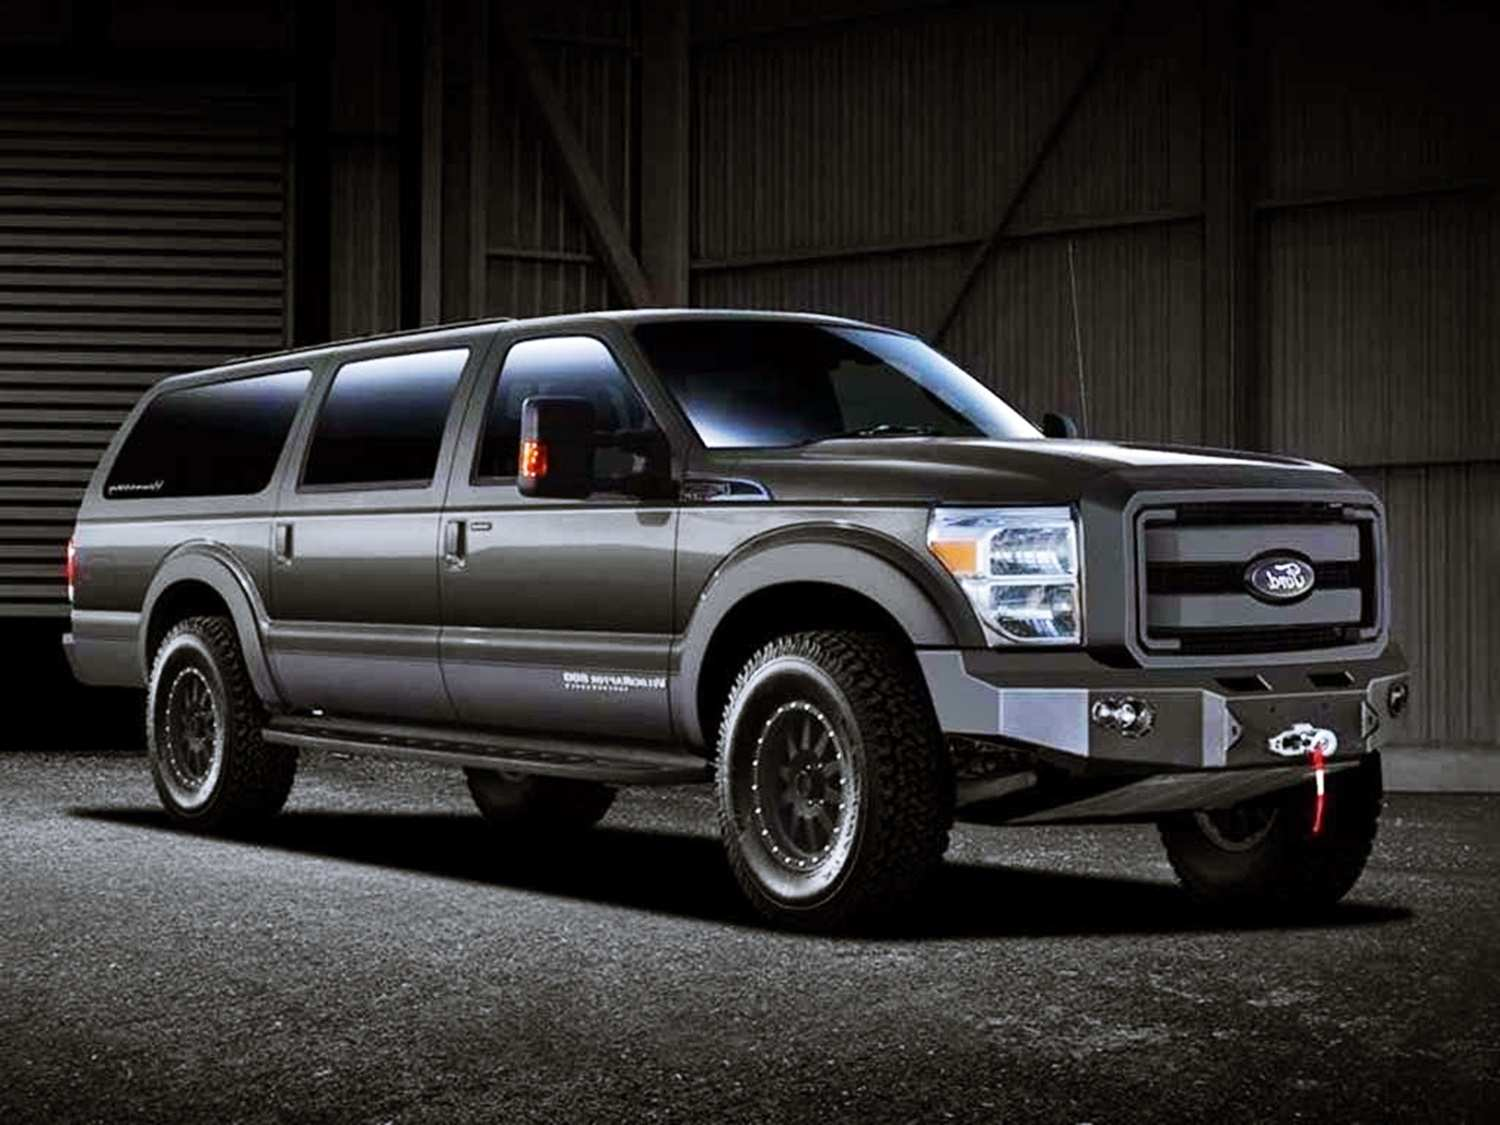 18 The Best 2020 Ford Excursion Photos